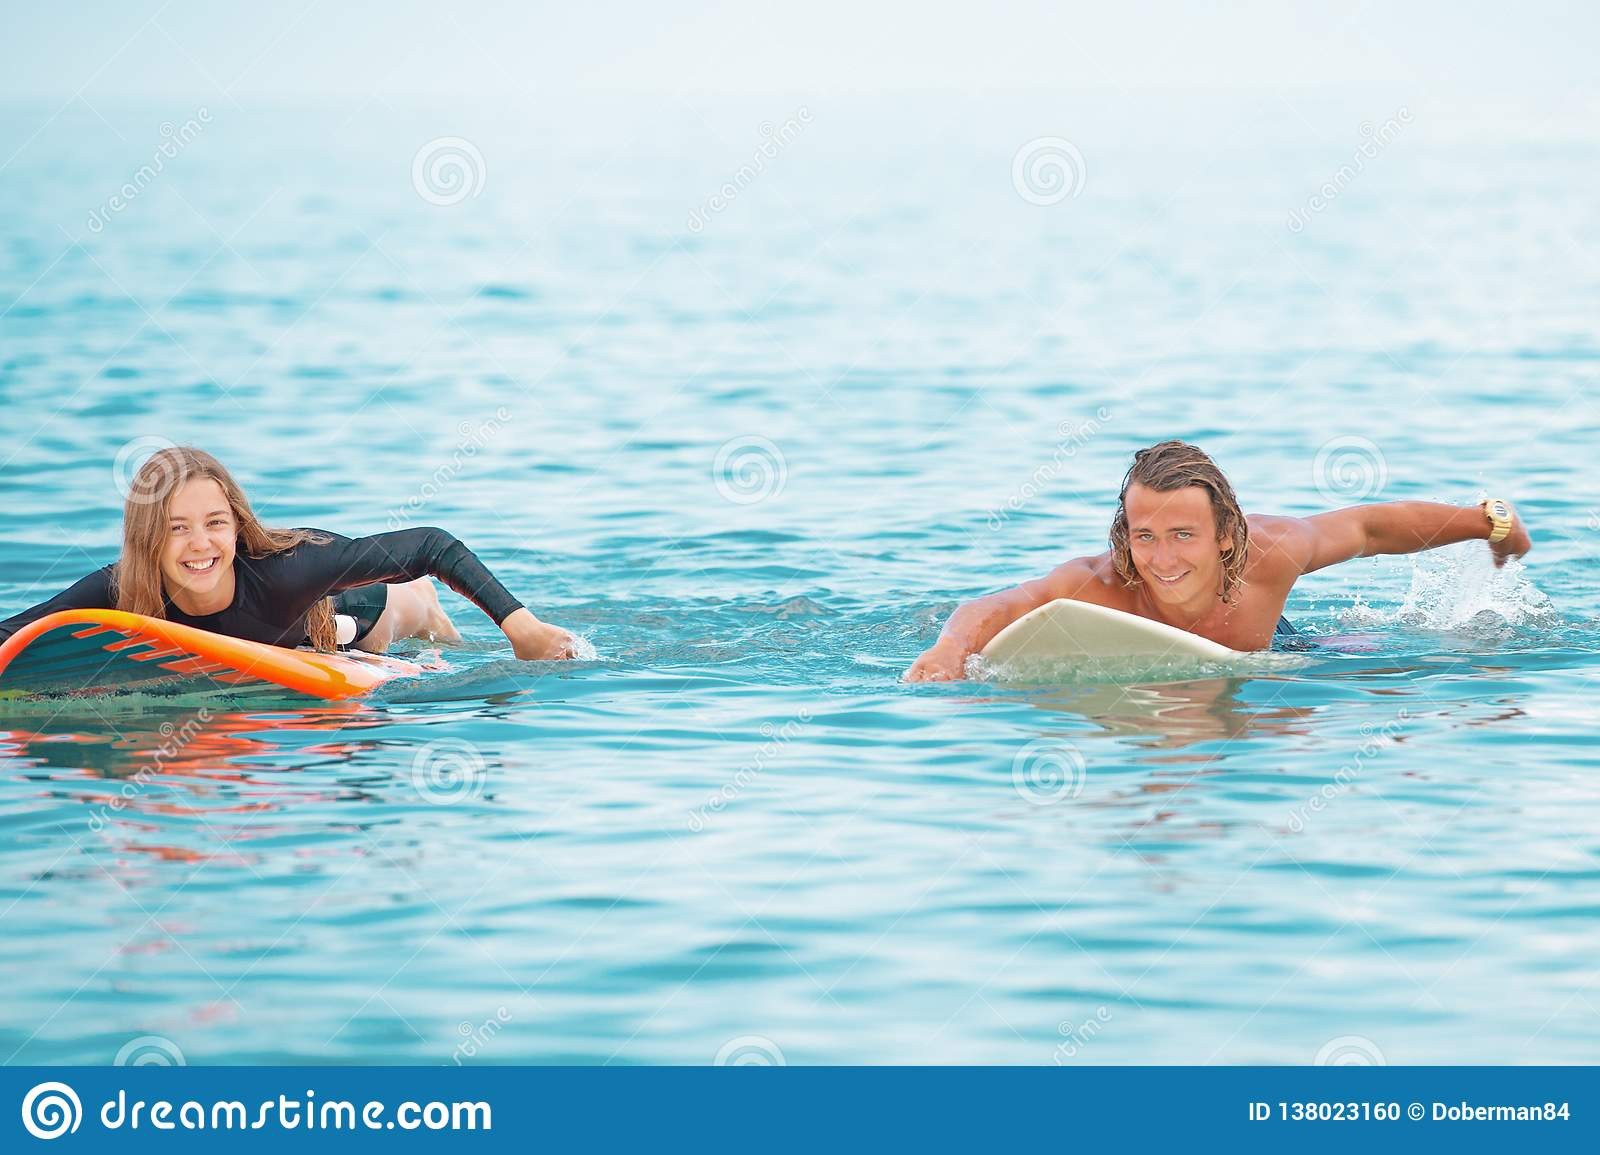 Surfers at the beach- Smiling couple of surfers swiming and having fun in summer. Extreme sport and vacation concept